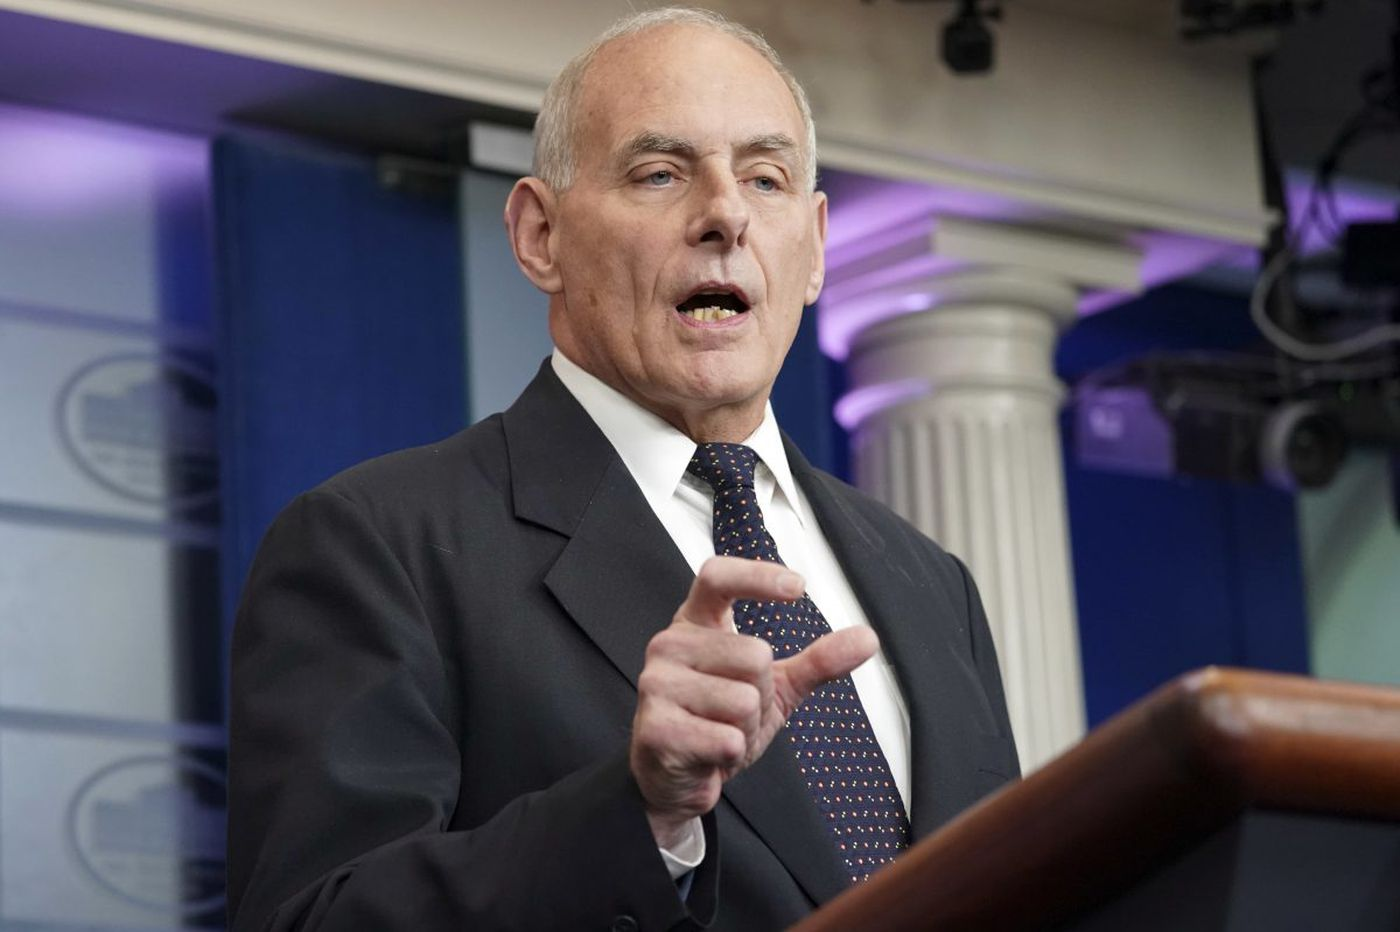 Kelly refuses to apologize for false attacks on Fla. congresswoman